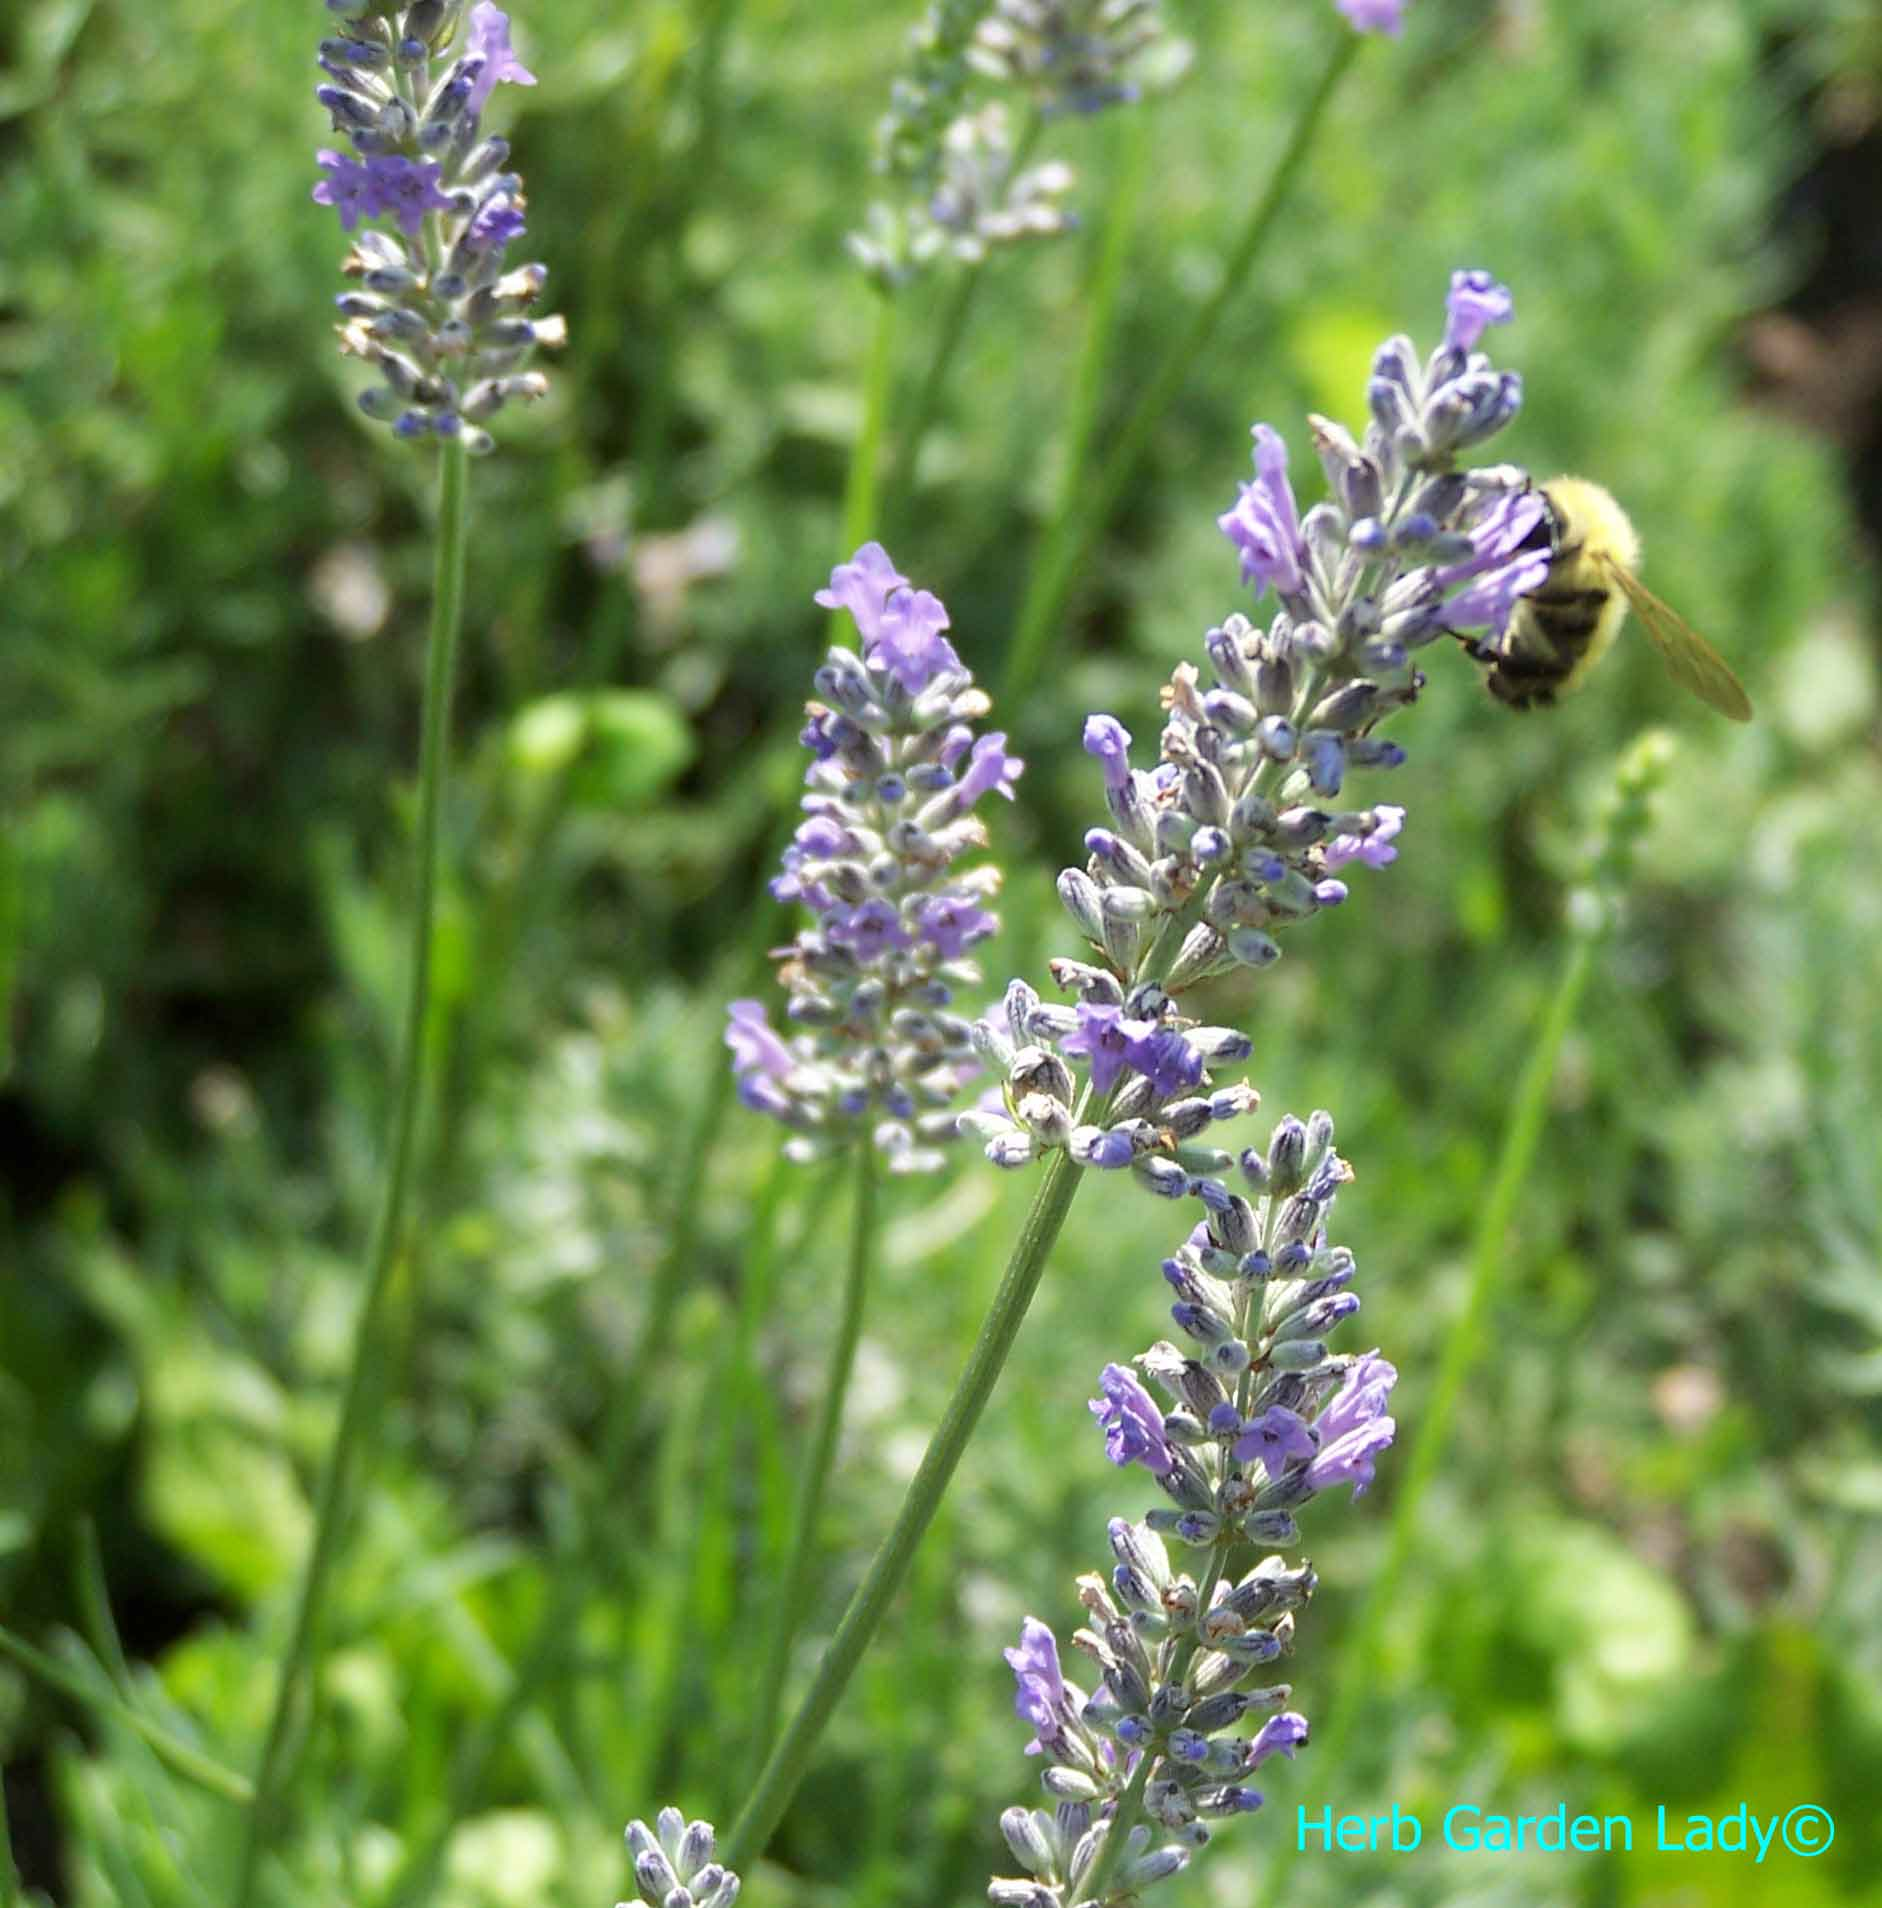 A bumble bee is pollinating lavender and is an important beneficial insect.